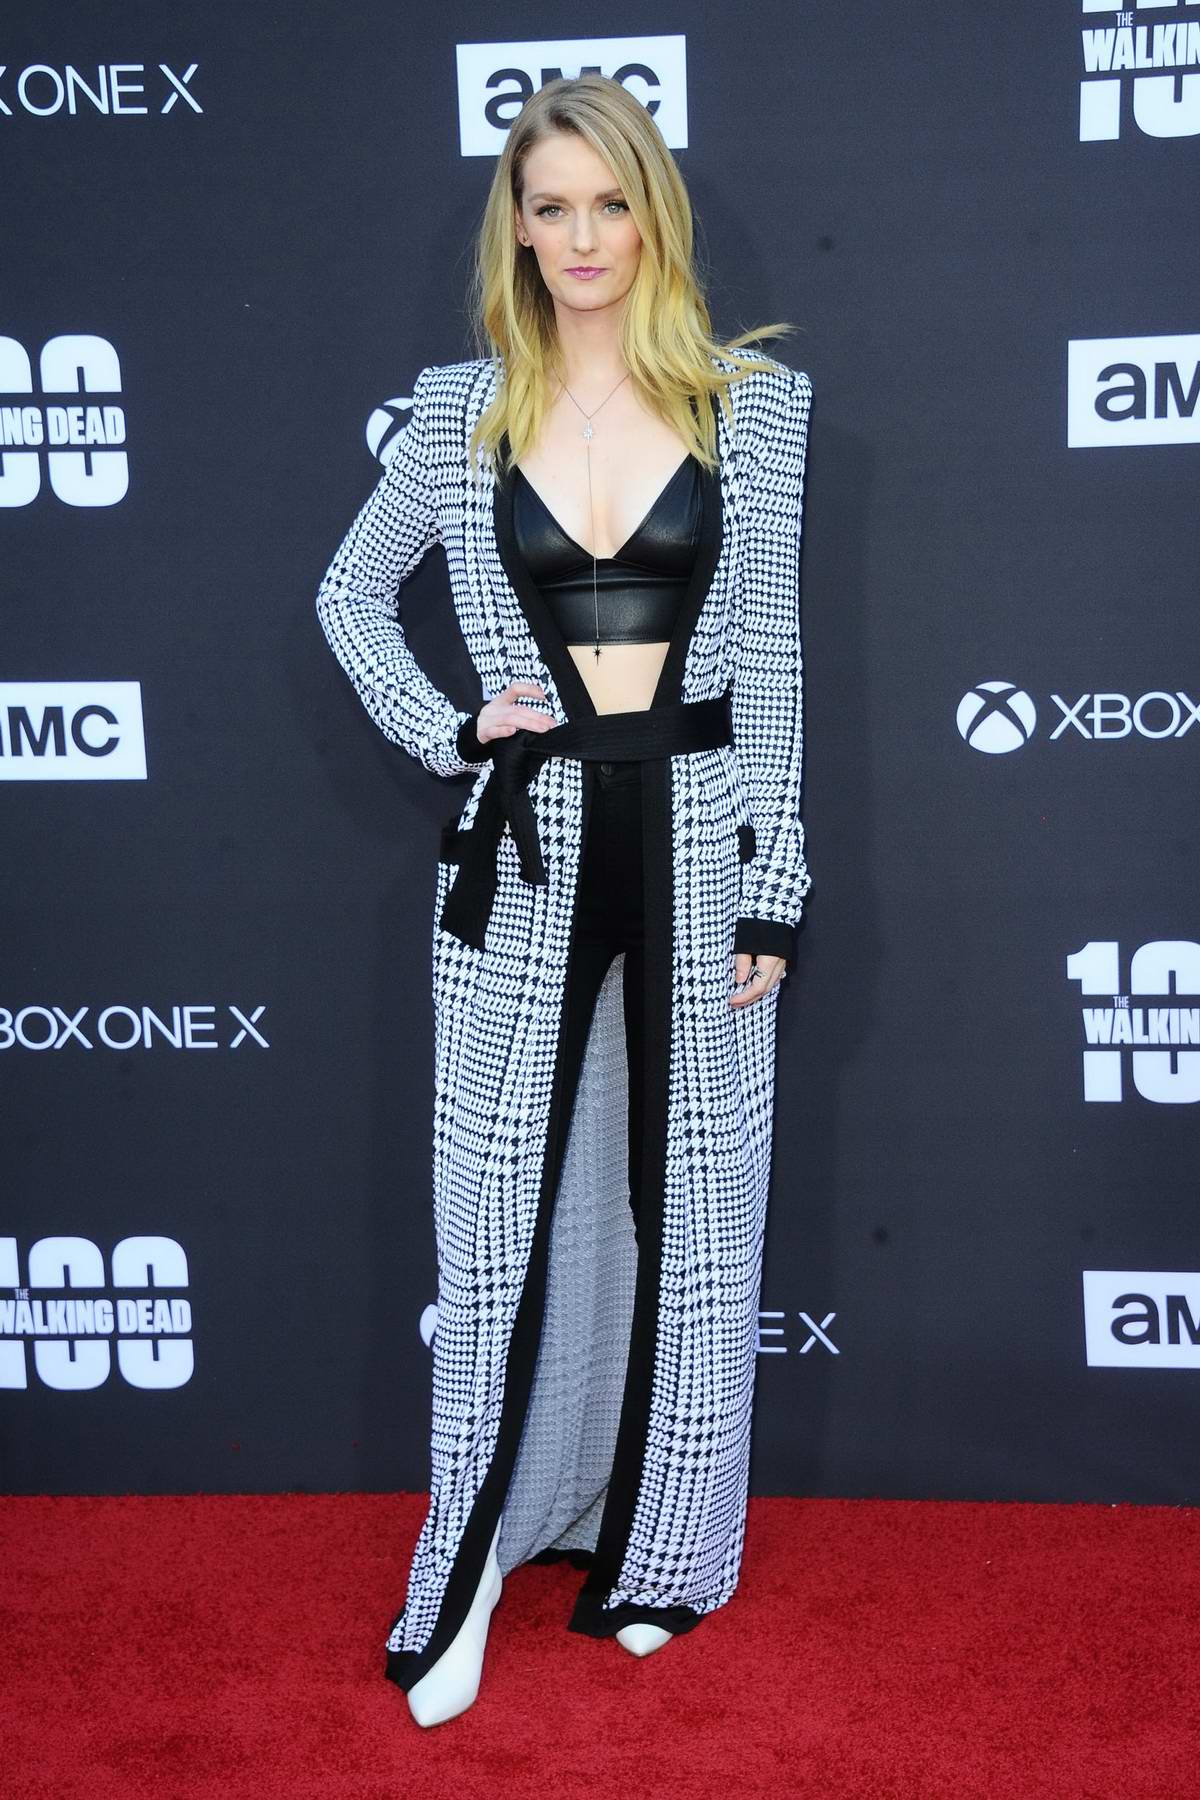 Lydia Hearst at The Walking Dead 100th episode premiere and party in Los Angeles